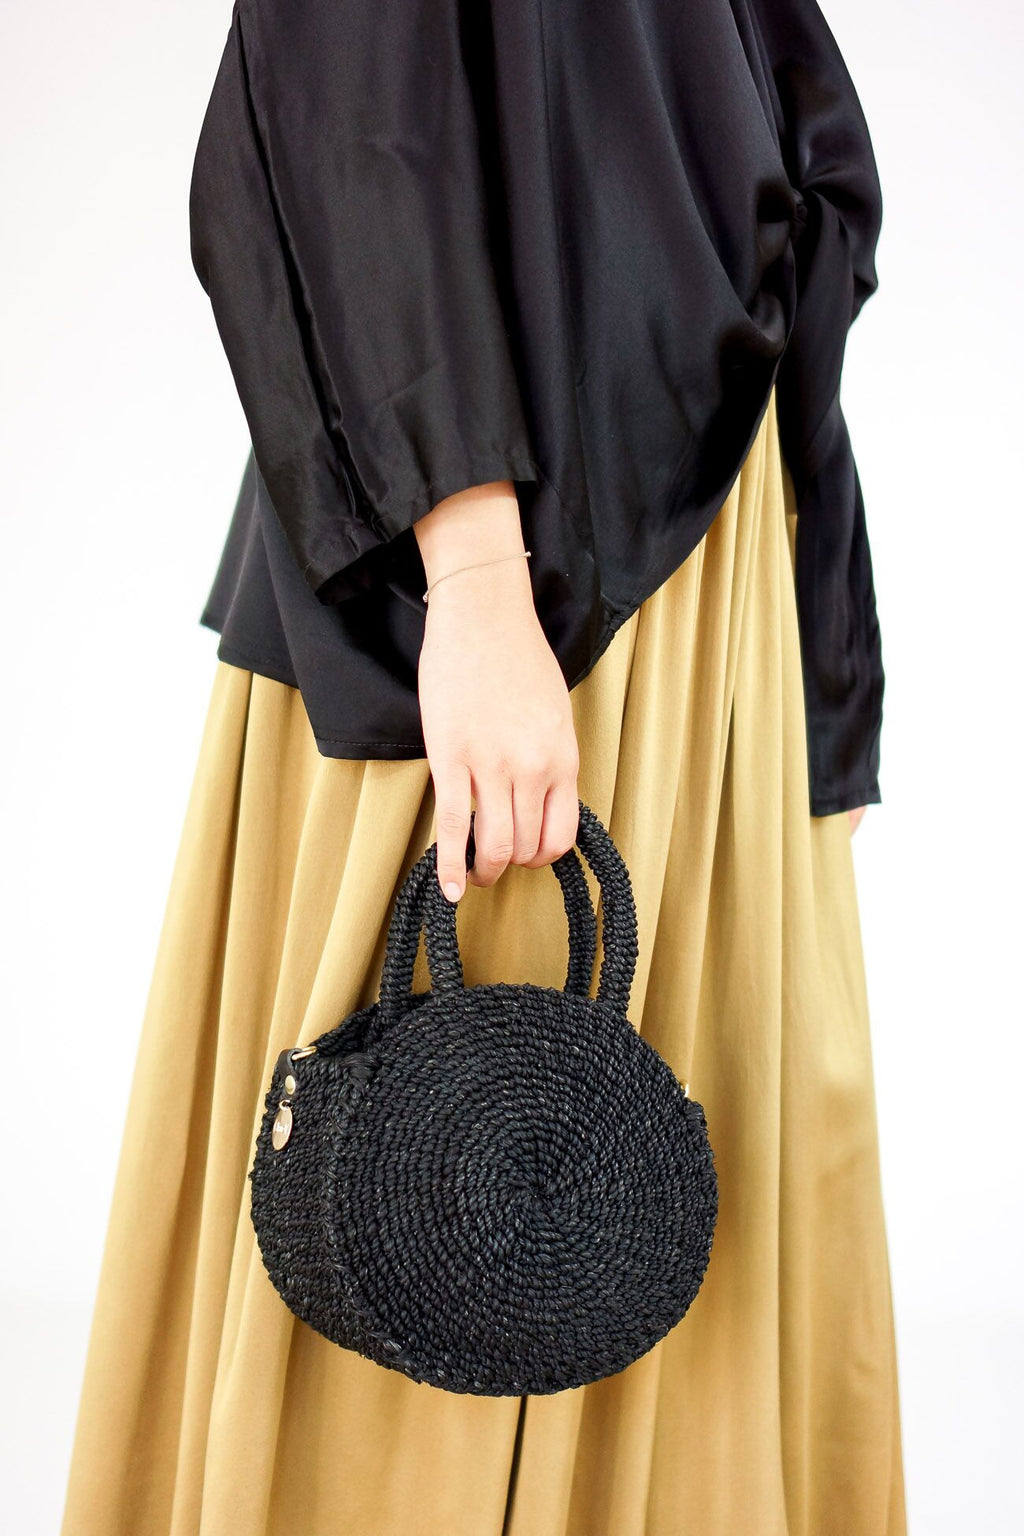 Clare Vivier Woven Petite Alice Bag in Black